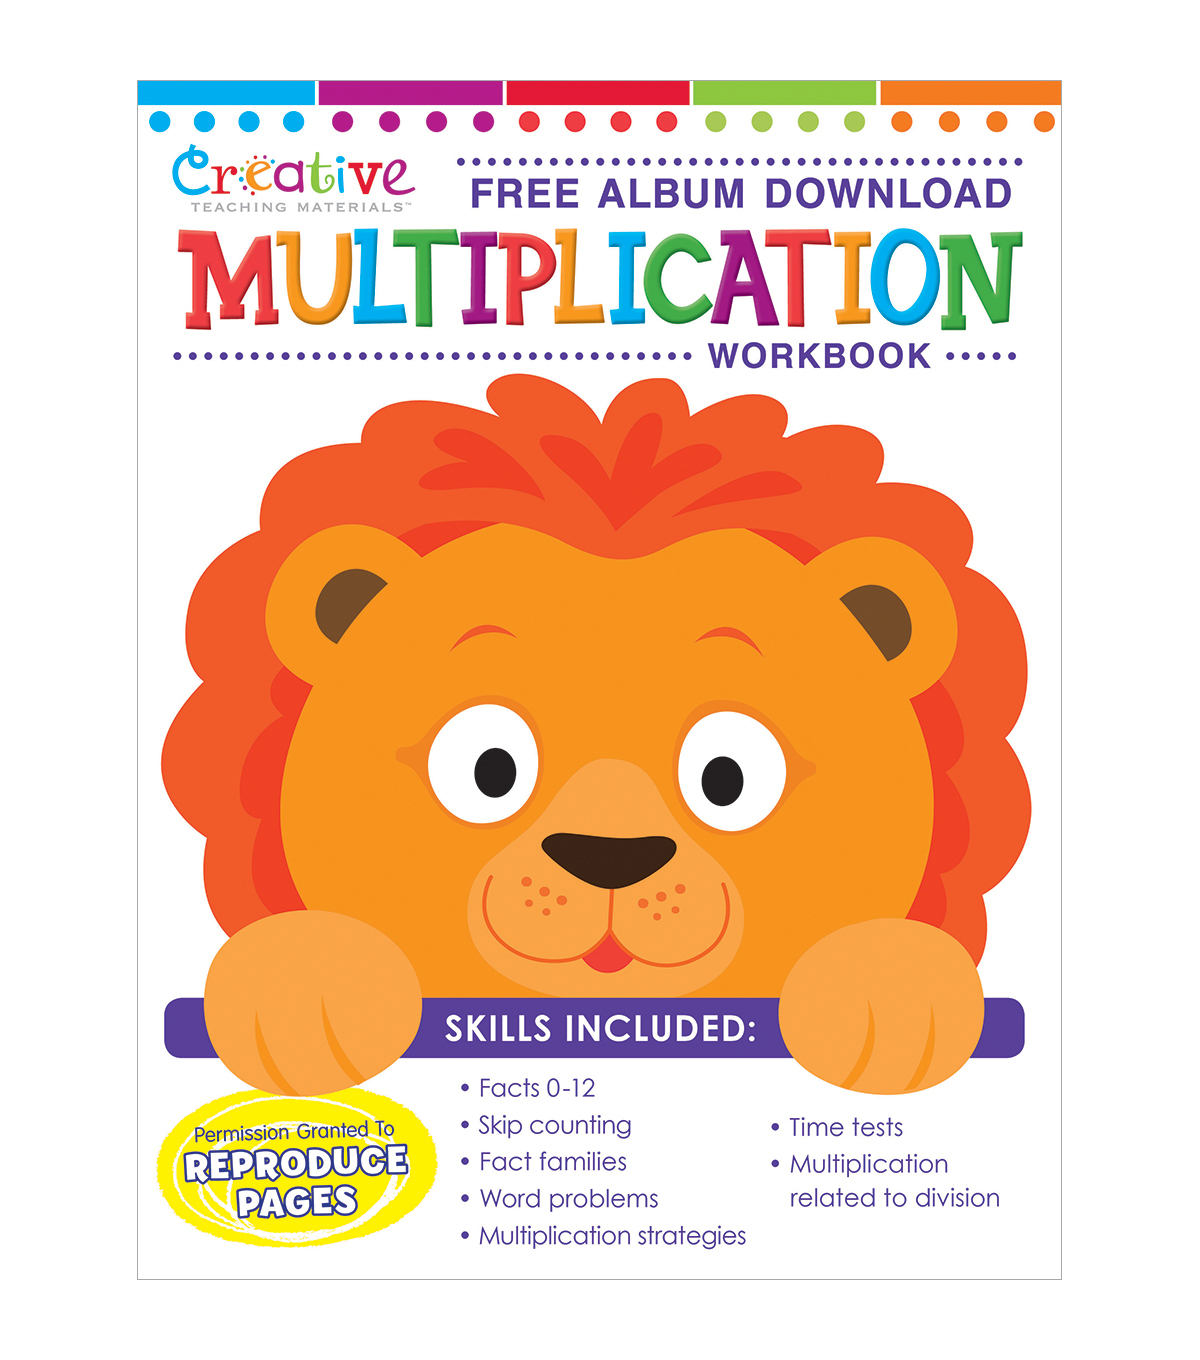 Creative Teaching Materials Workbook-Multiplication